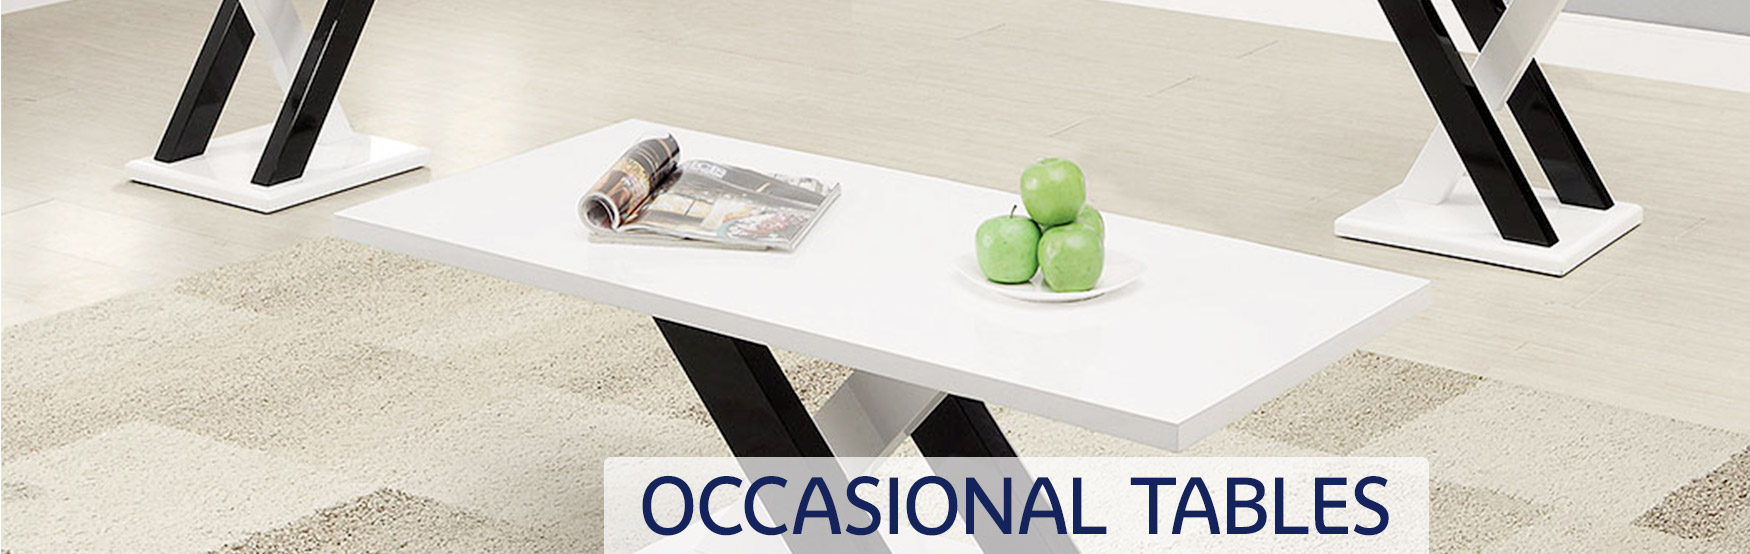 Occasional Tables Banner